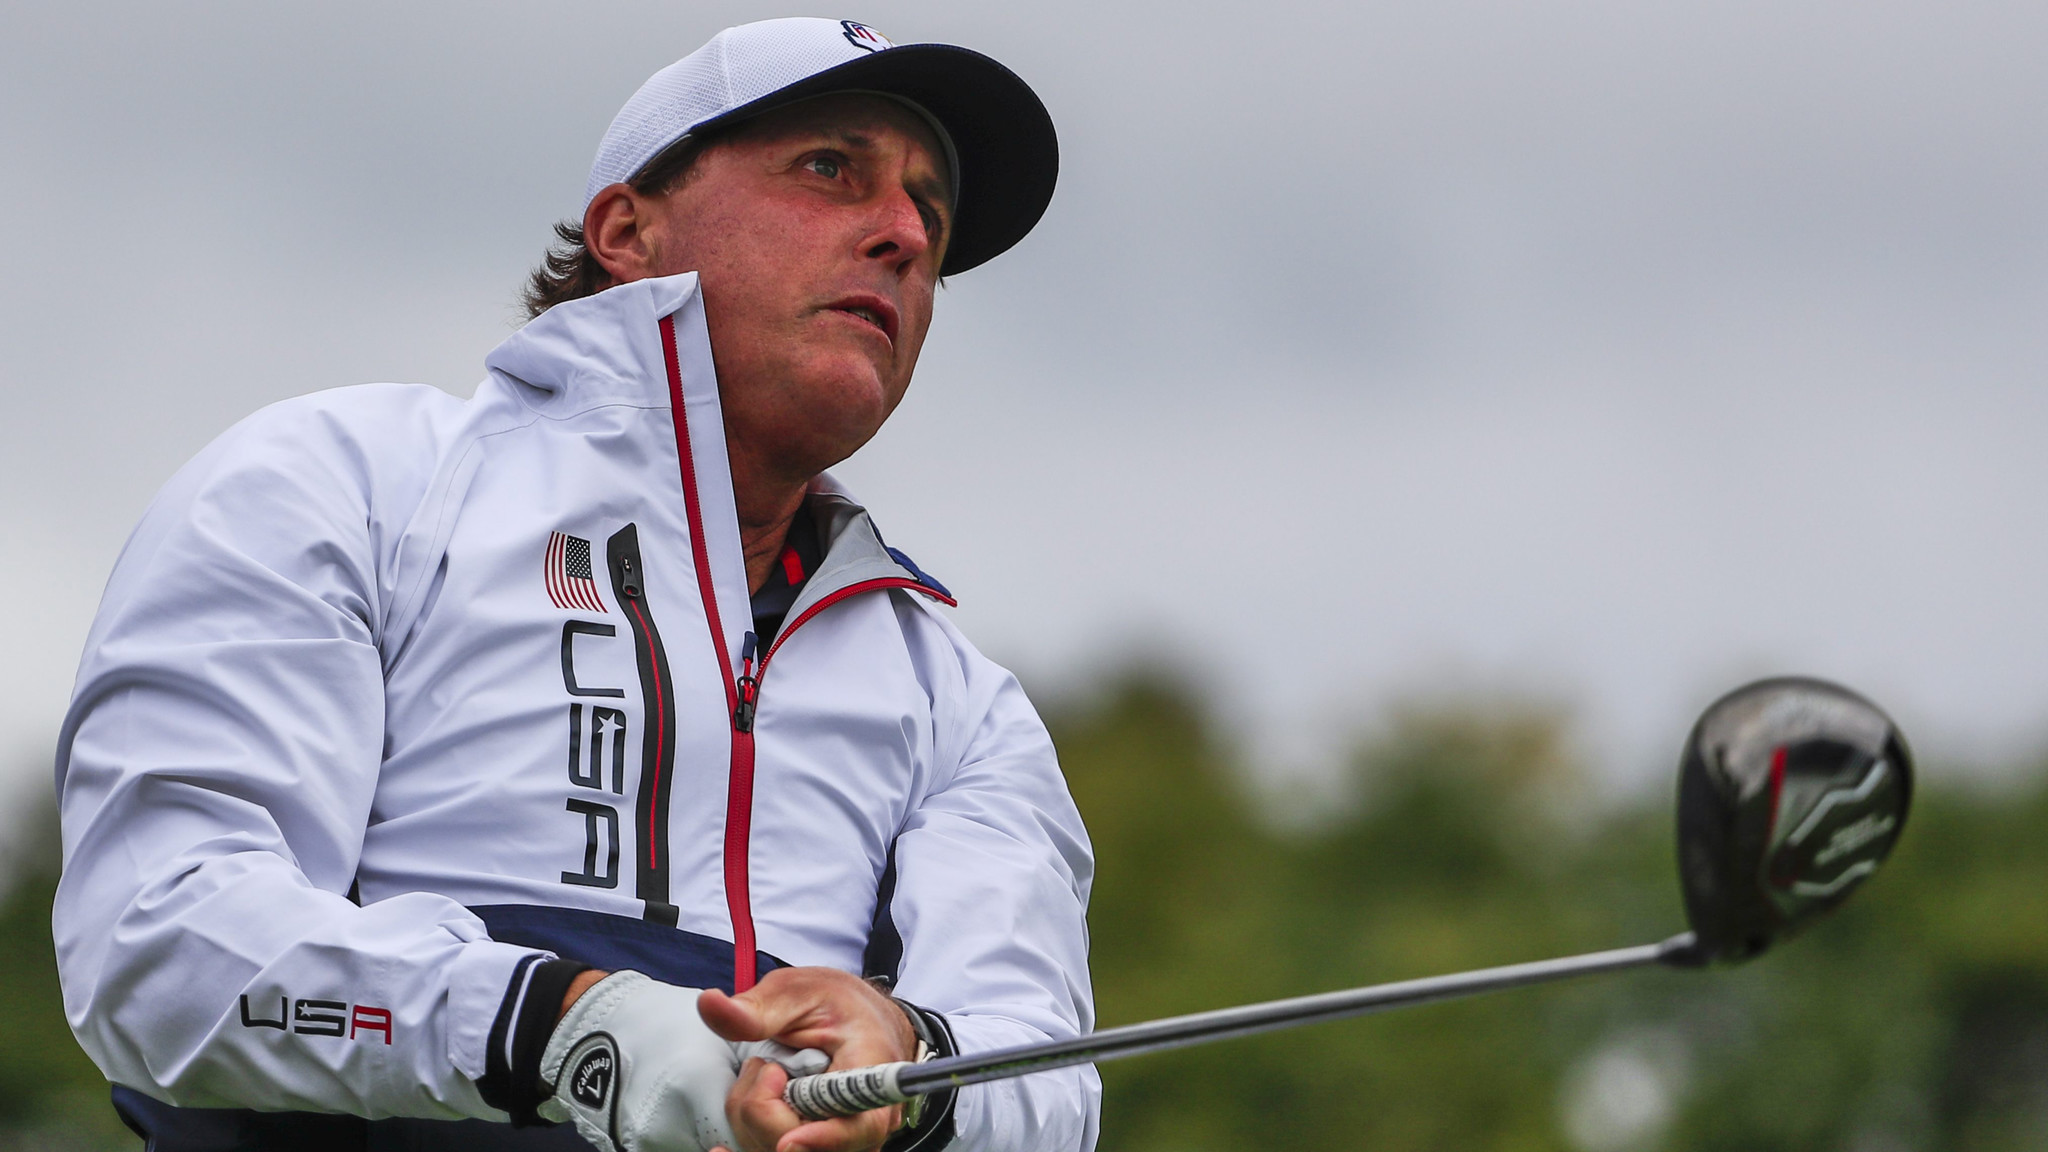 phil mickelson - photo #30